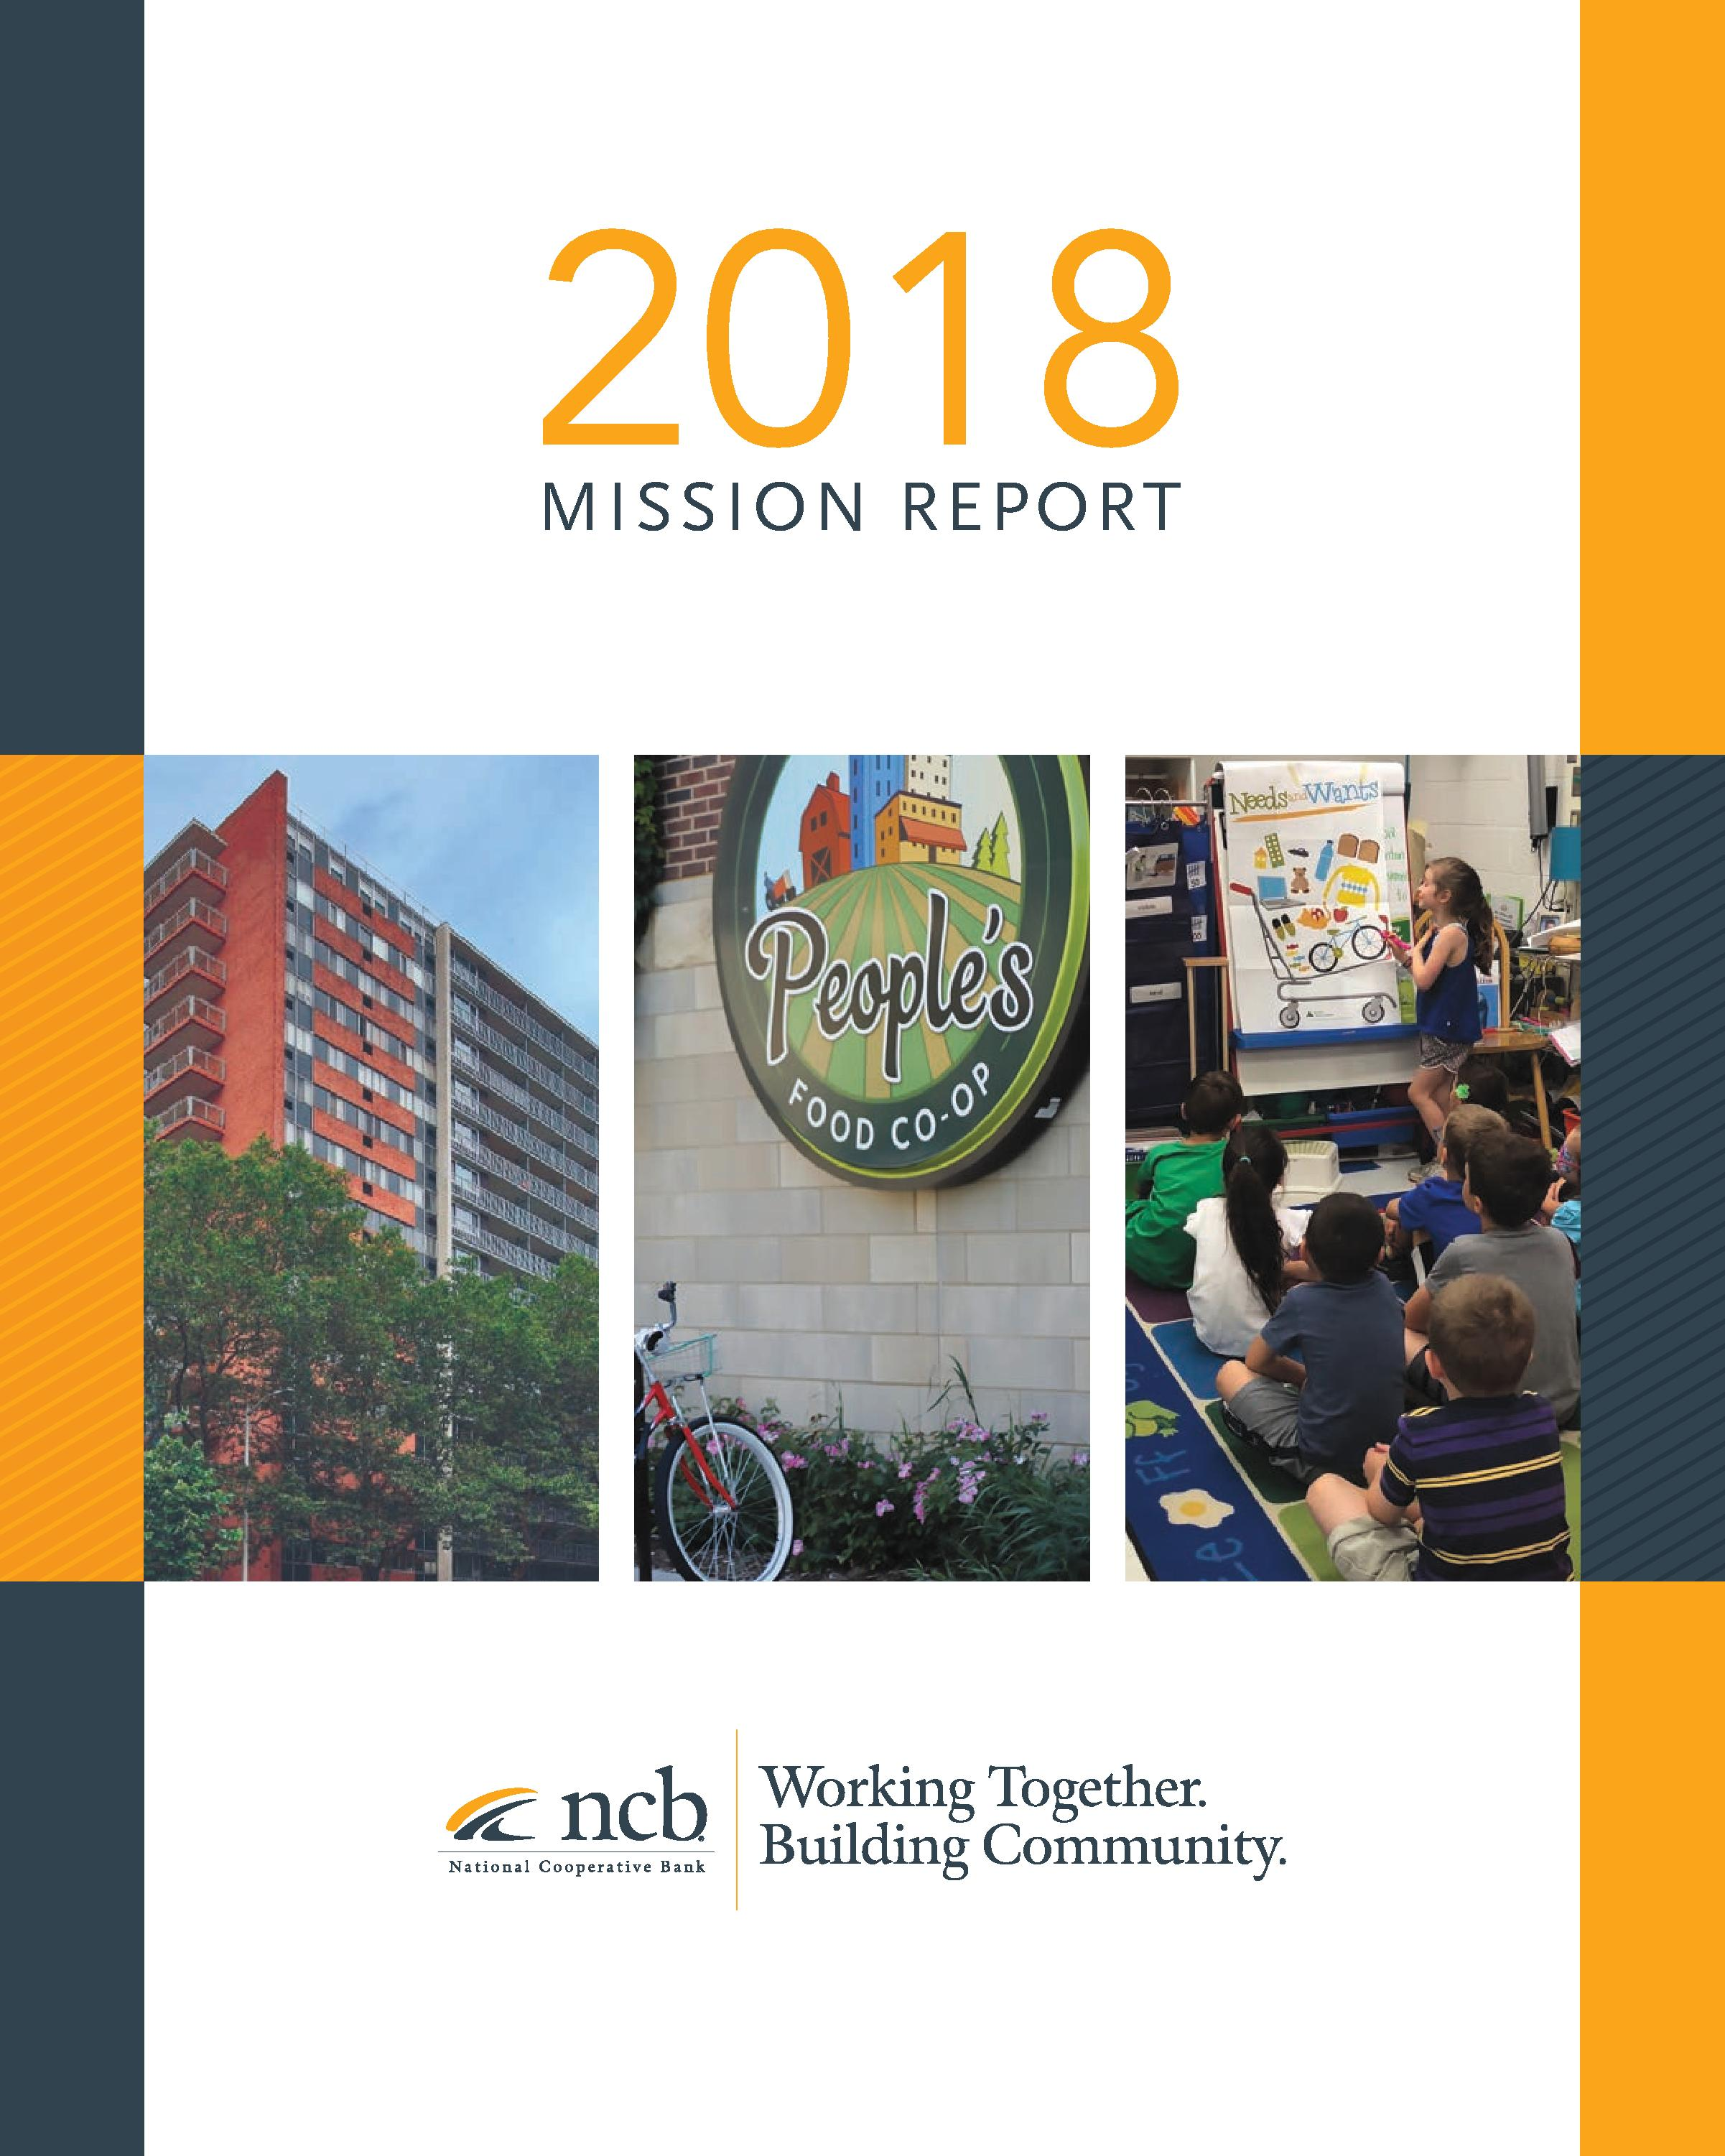 National Cooperative Bank Commits $240.4 Million to Initiatives Serving Low-and Moderate-Income Communities and New Cooperative Development in 2018